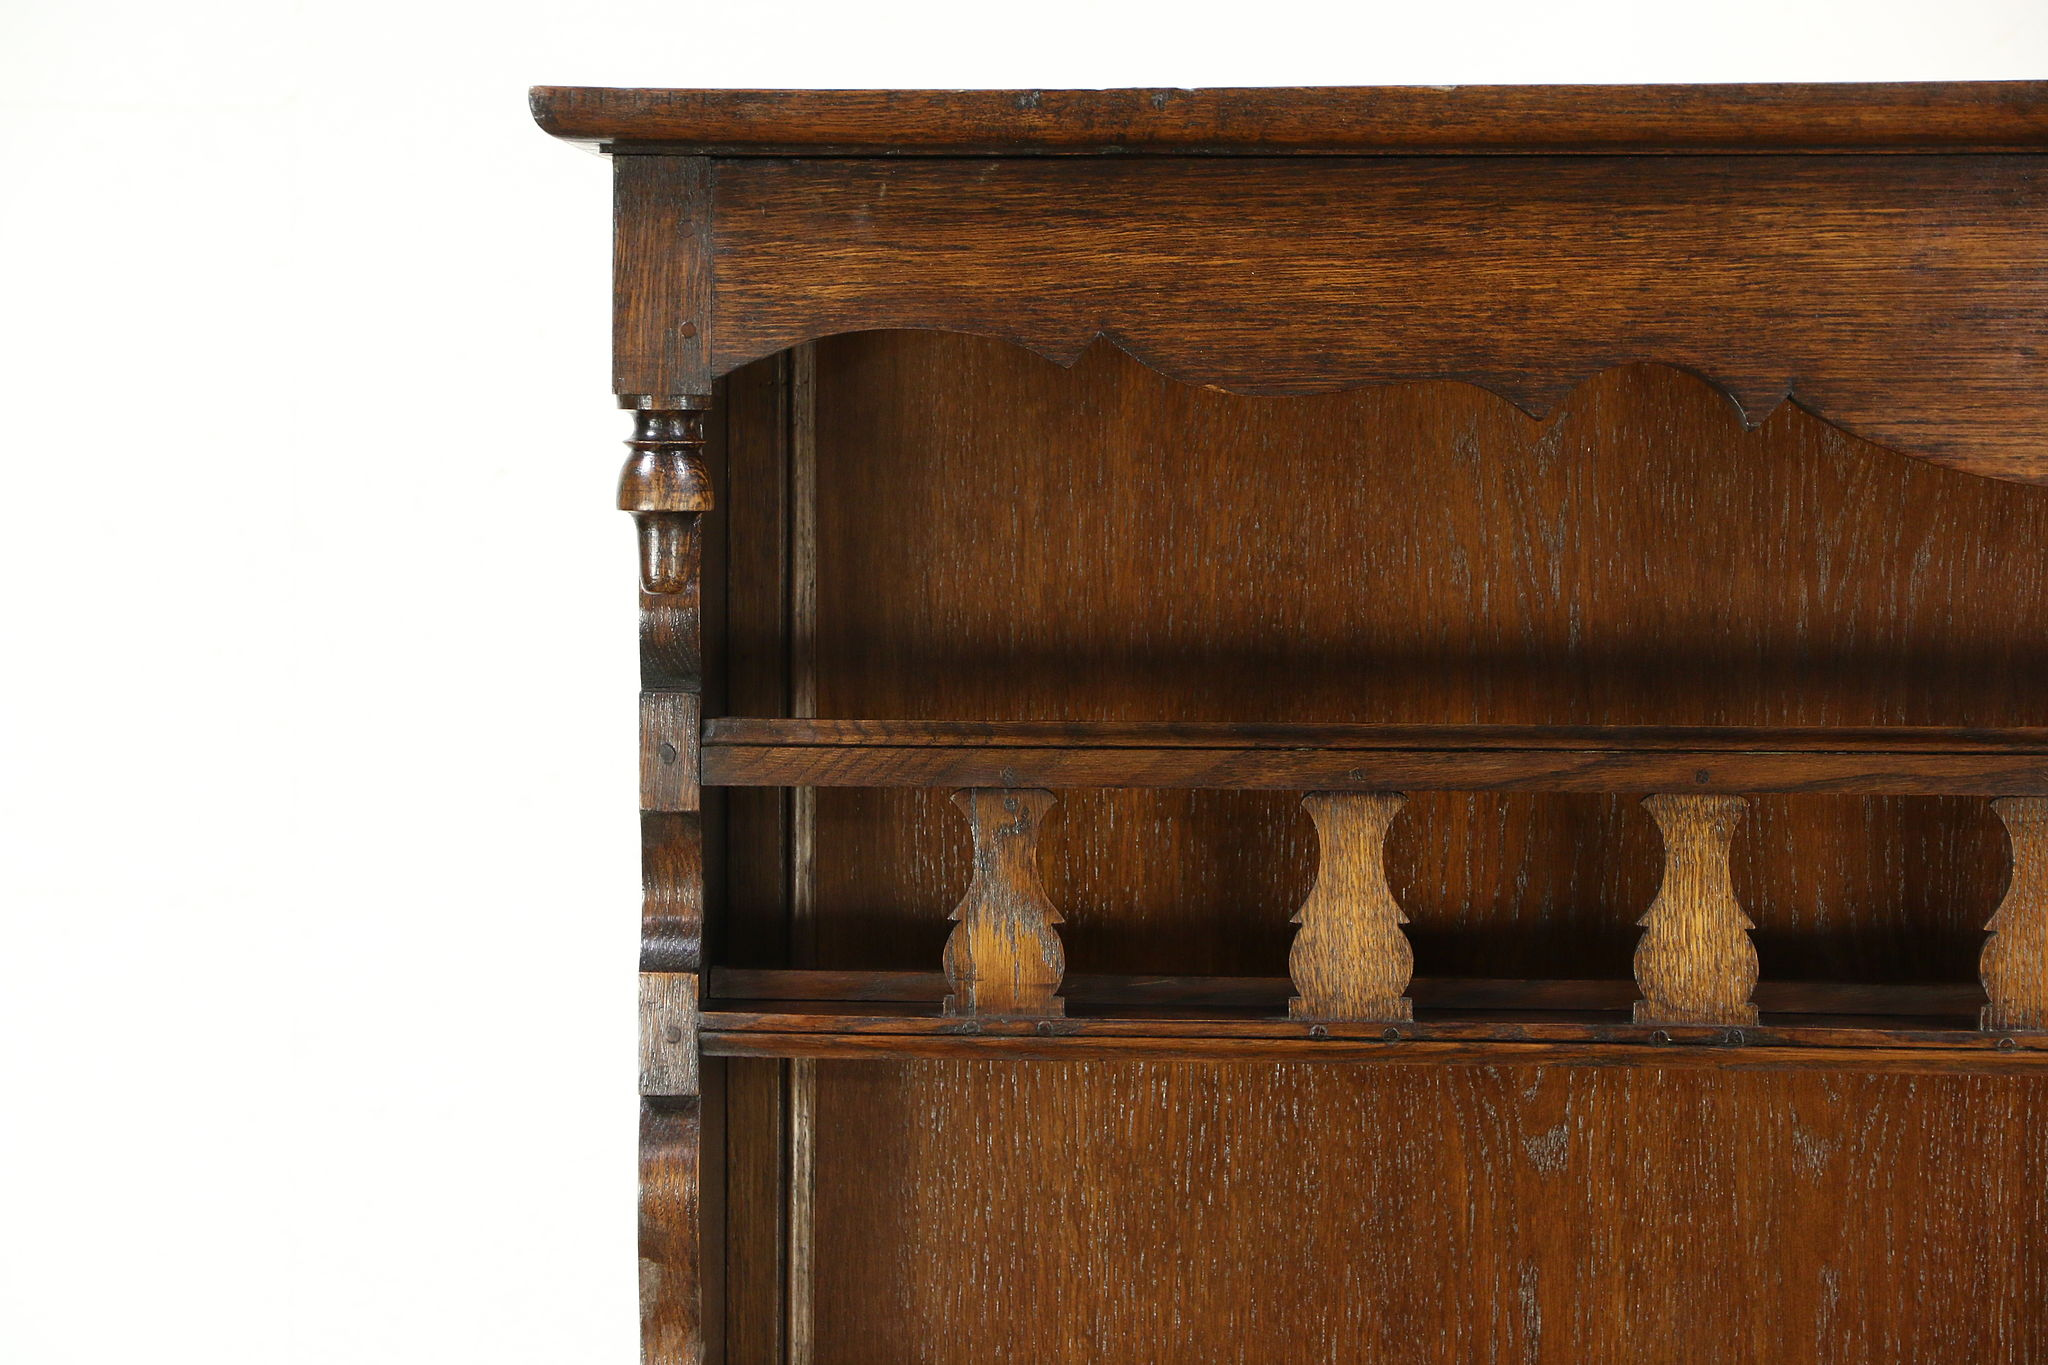 Oak 1840 Antique French Provincial Pewter Cupboard  Sideboard or Welsh  Dresser. Oak 1840 Antique French Provincial Pewter Cupboard  Sideboard or